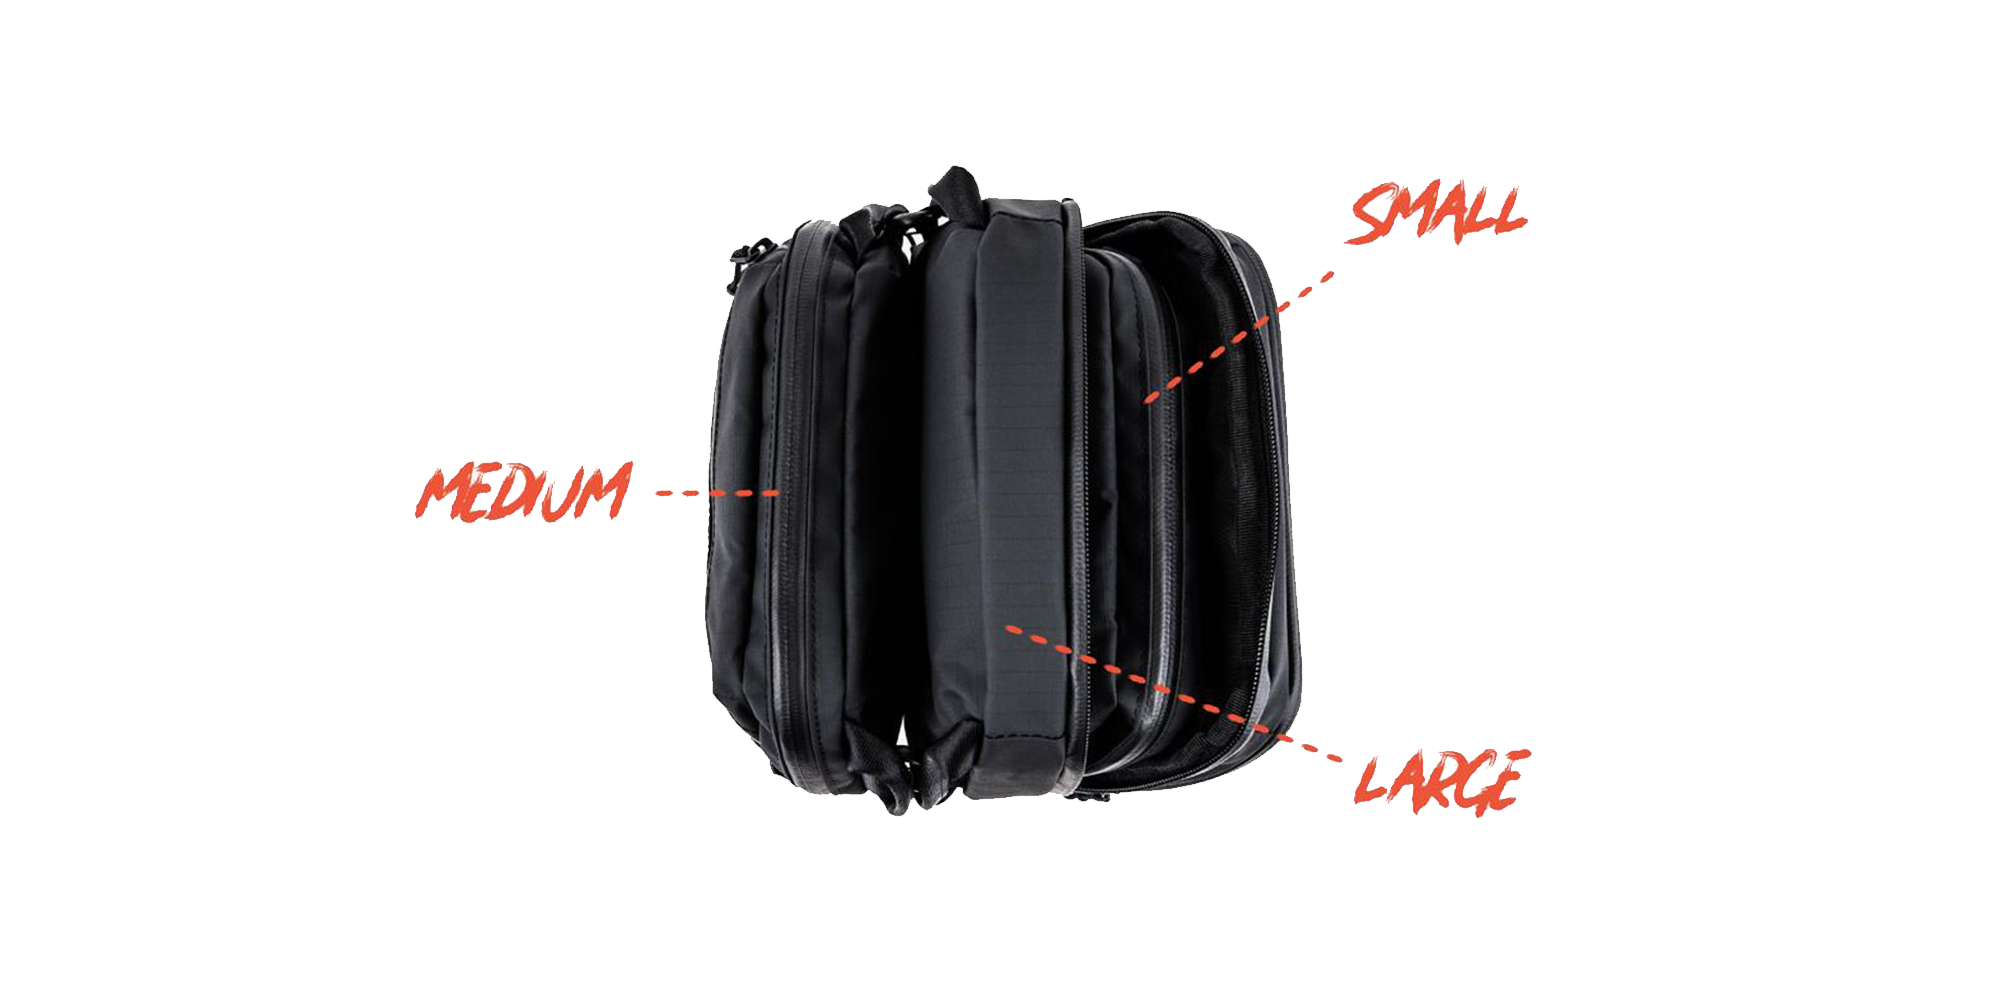 Wandrd Tech Pouch Large, Medium and Small